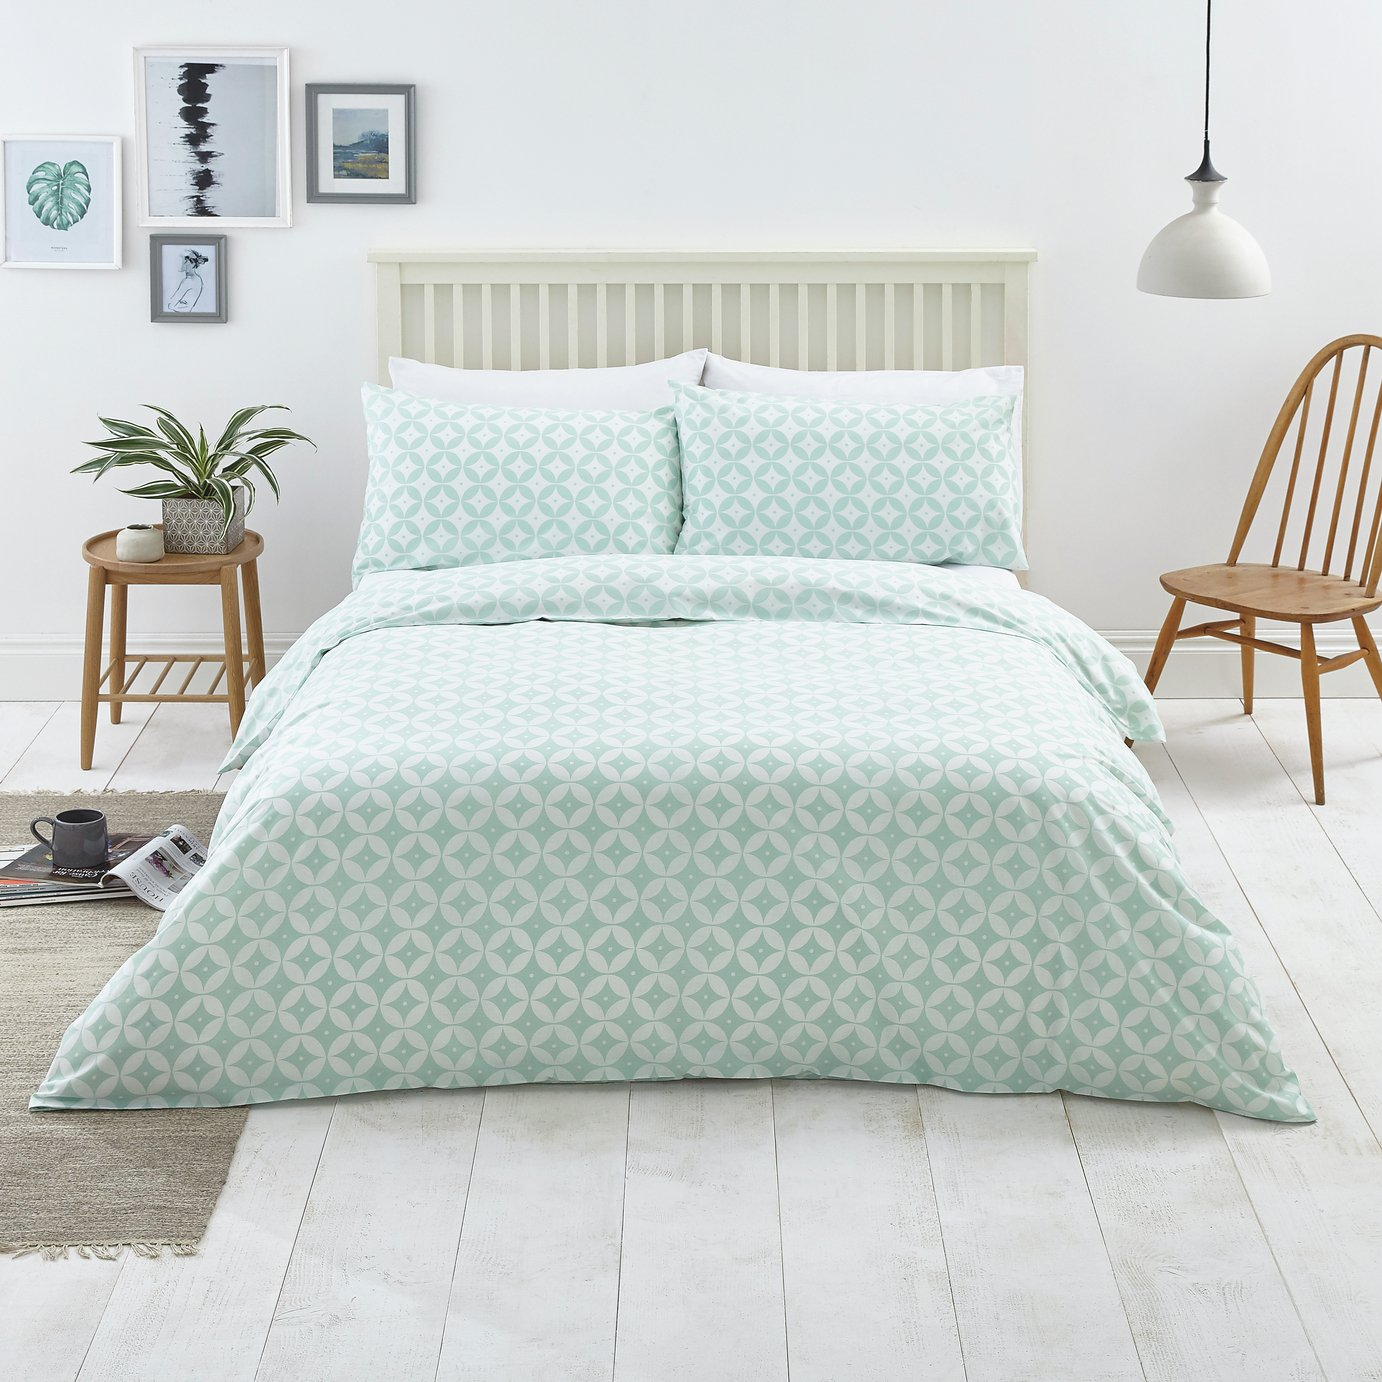 Argos Home Duck Egg Geo Bedding Set - Kingsize